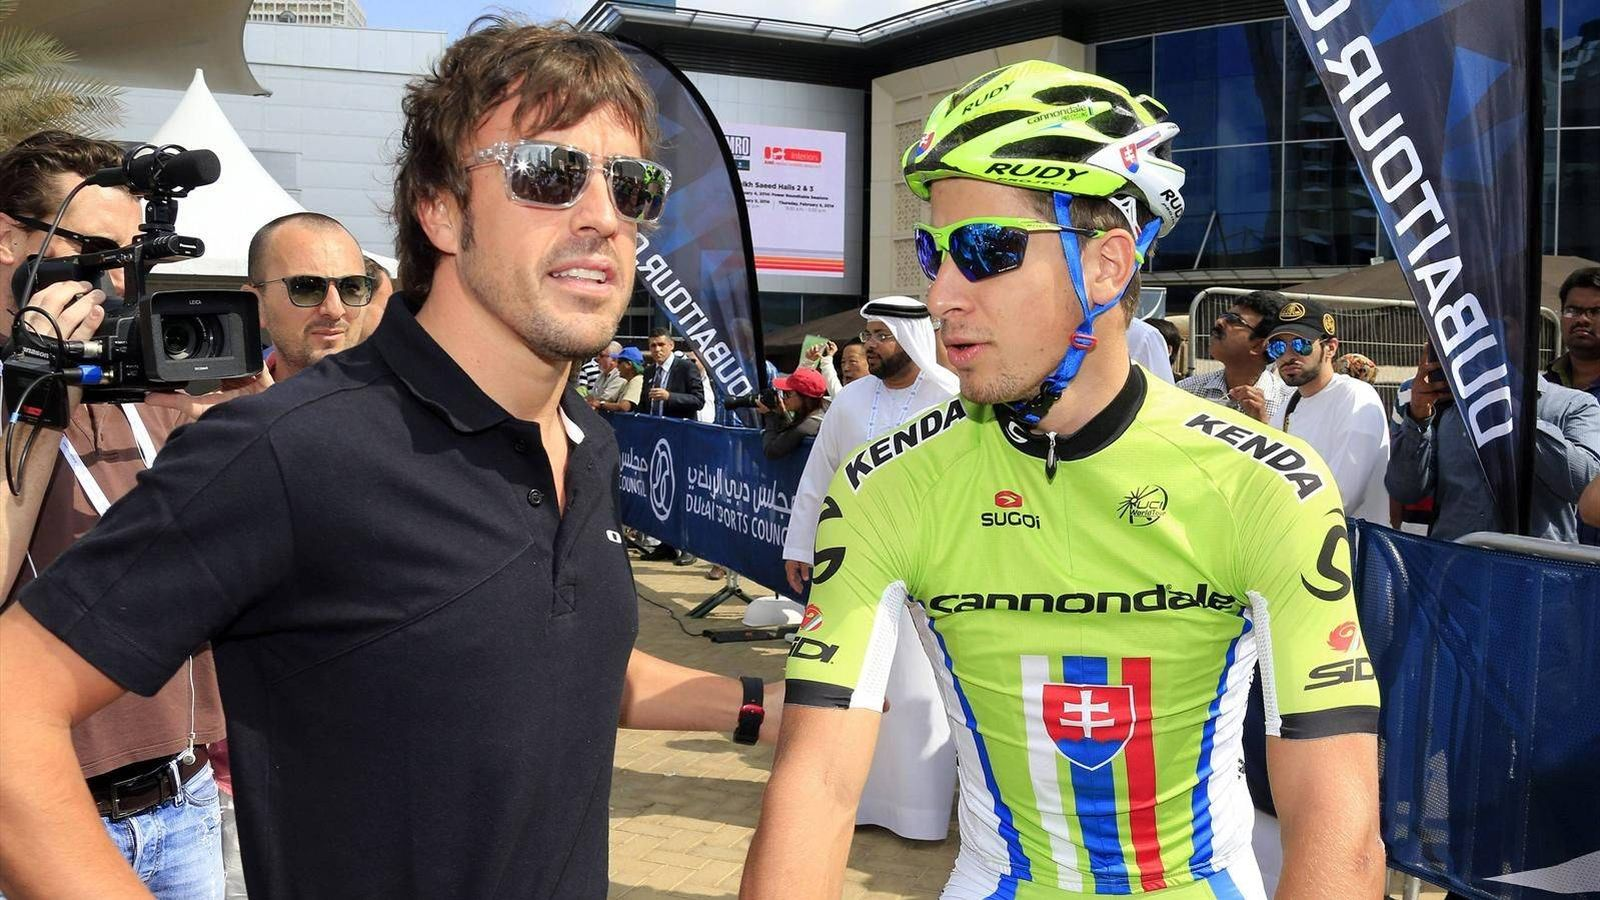 Foto: Alonso talks with Peter Sagan, Slovak professional cycling racer. (Reuters)